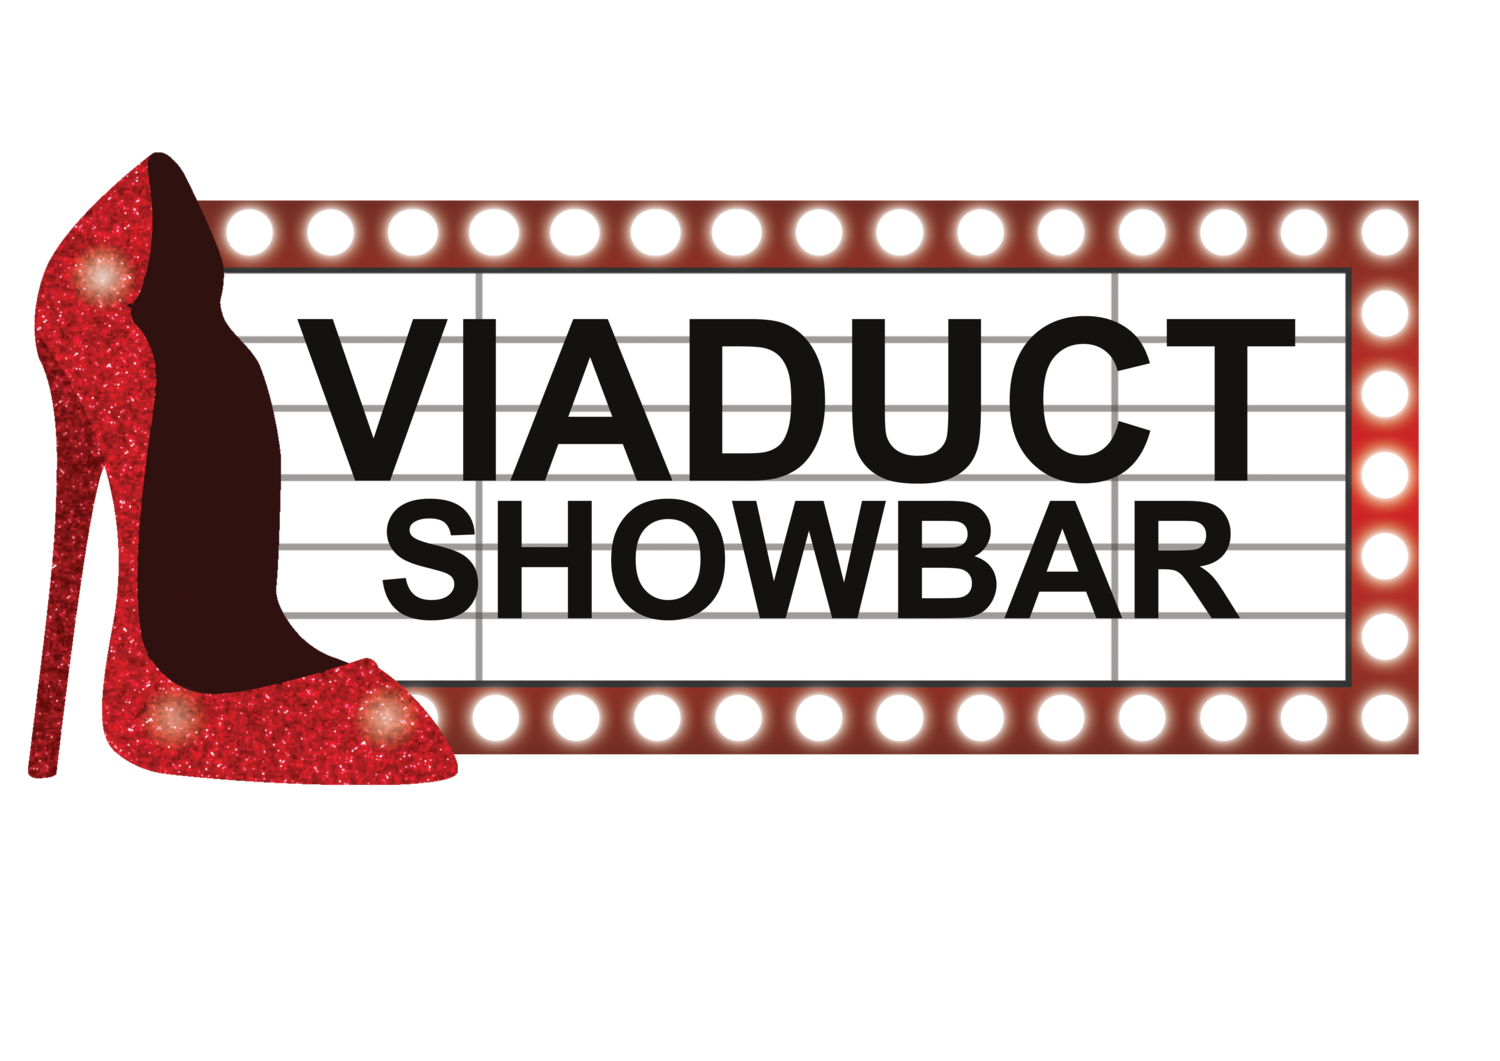 VIADUCT SHOWBAR LEEDS